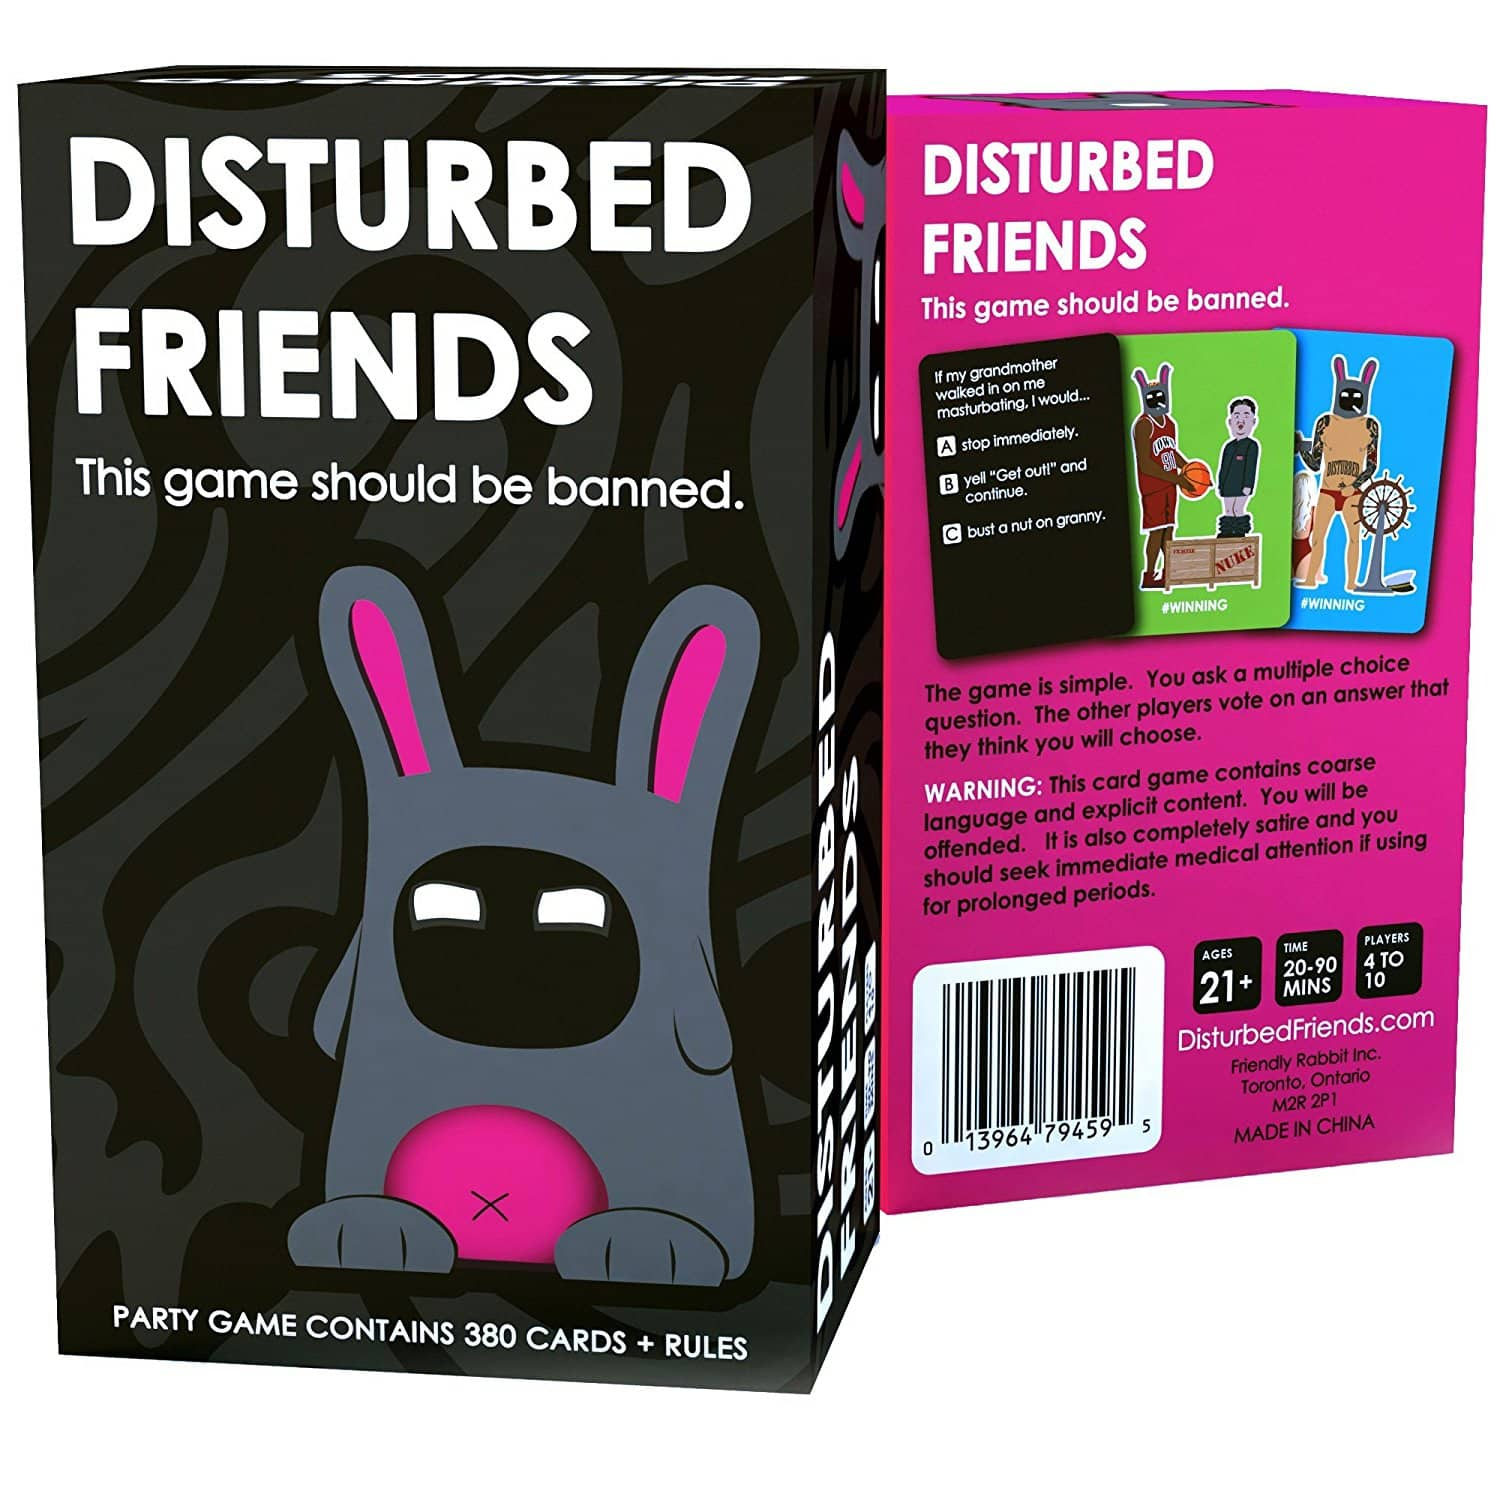 Disturbed Friends - This game should be banned  $15.99 Free S&h